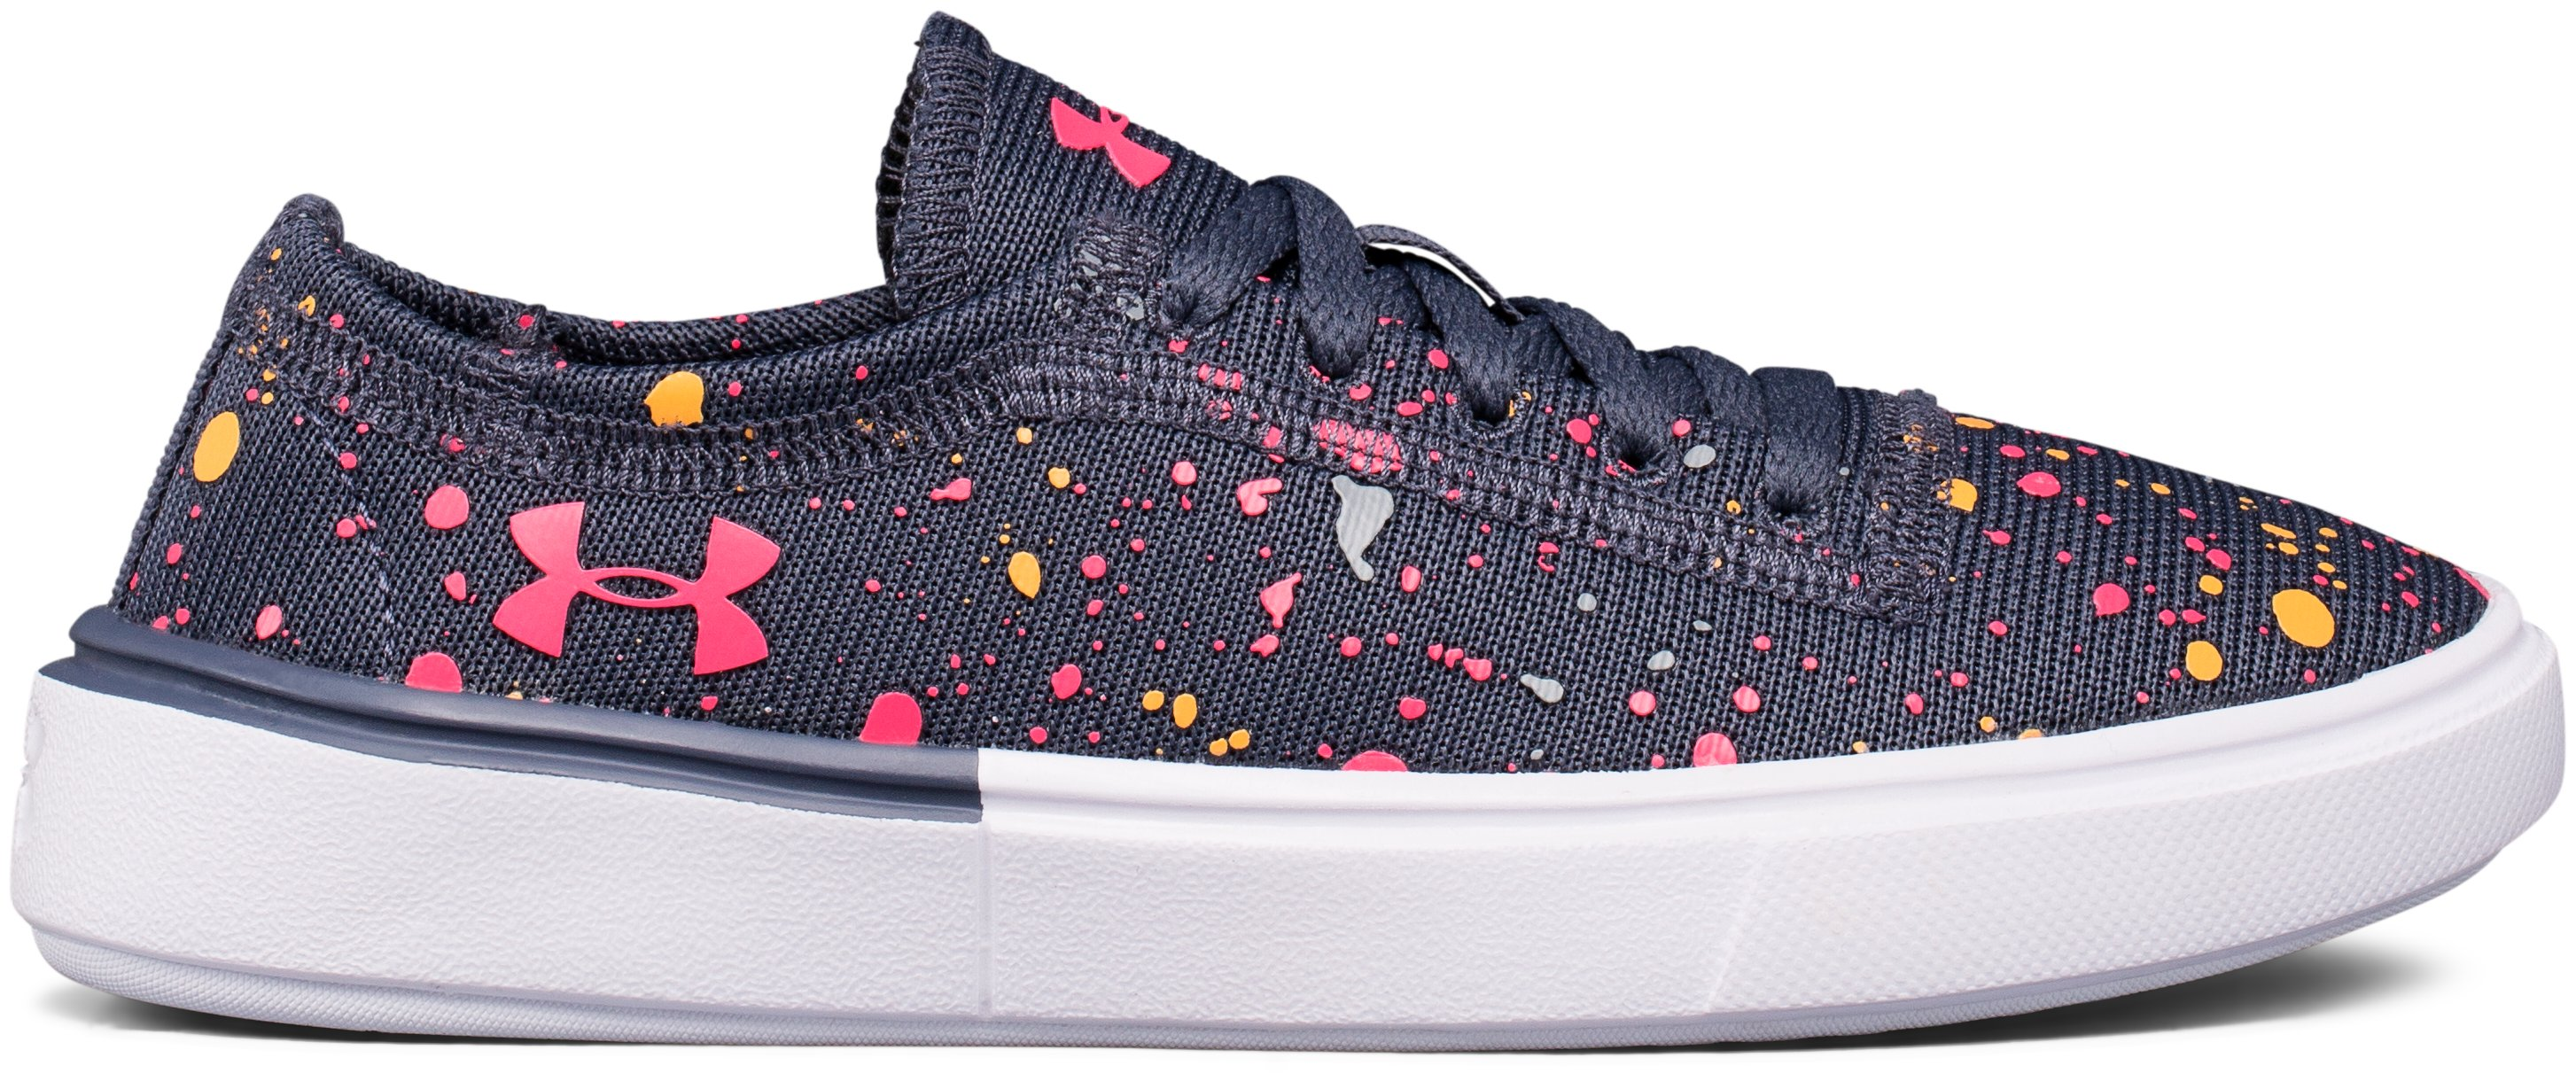 Girls' Pre-School UA KickIt2 Splatter Lifestyle Shoes, APOLLO GRAY